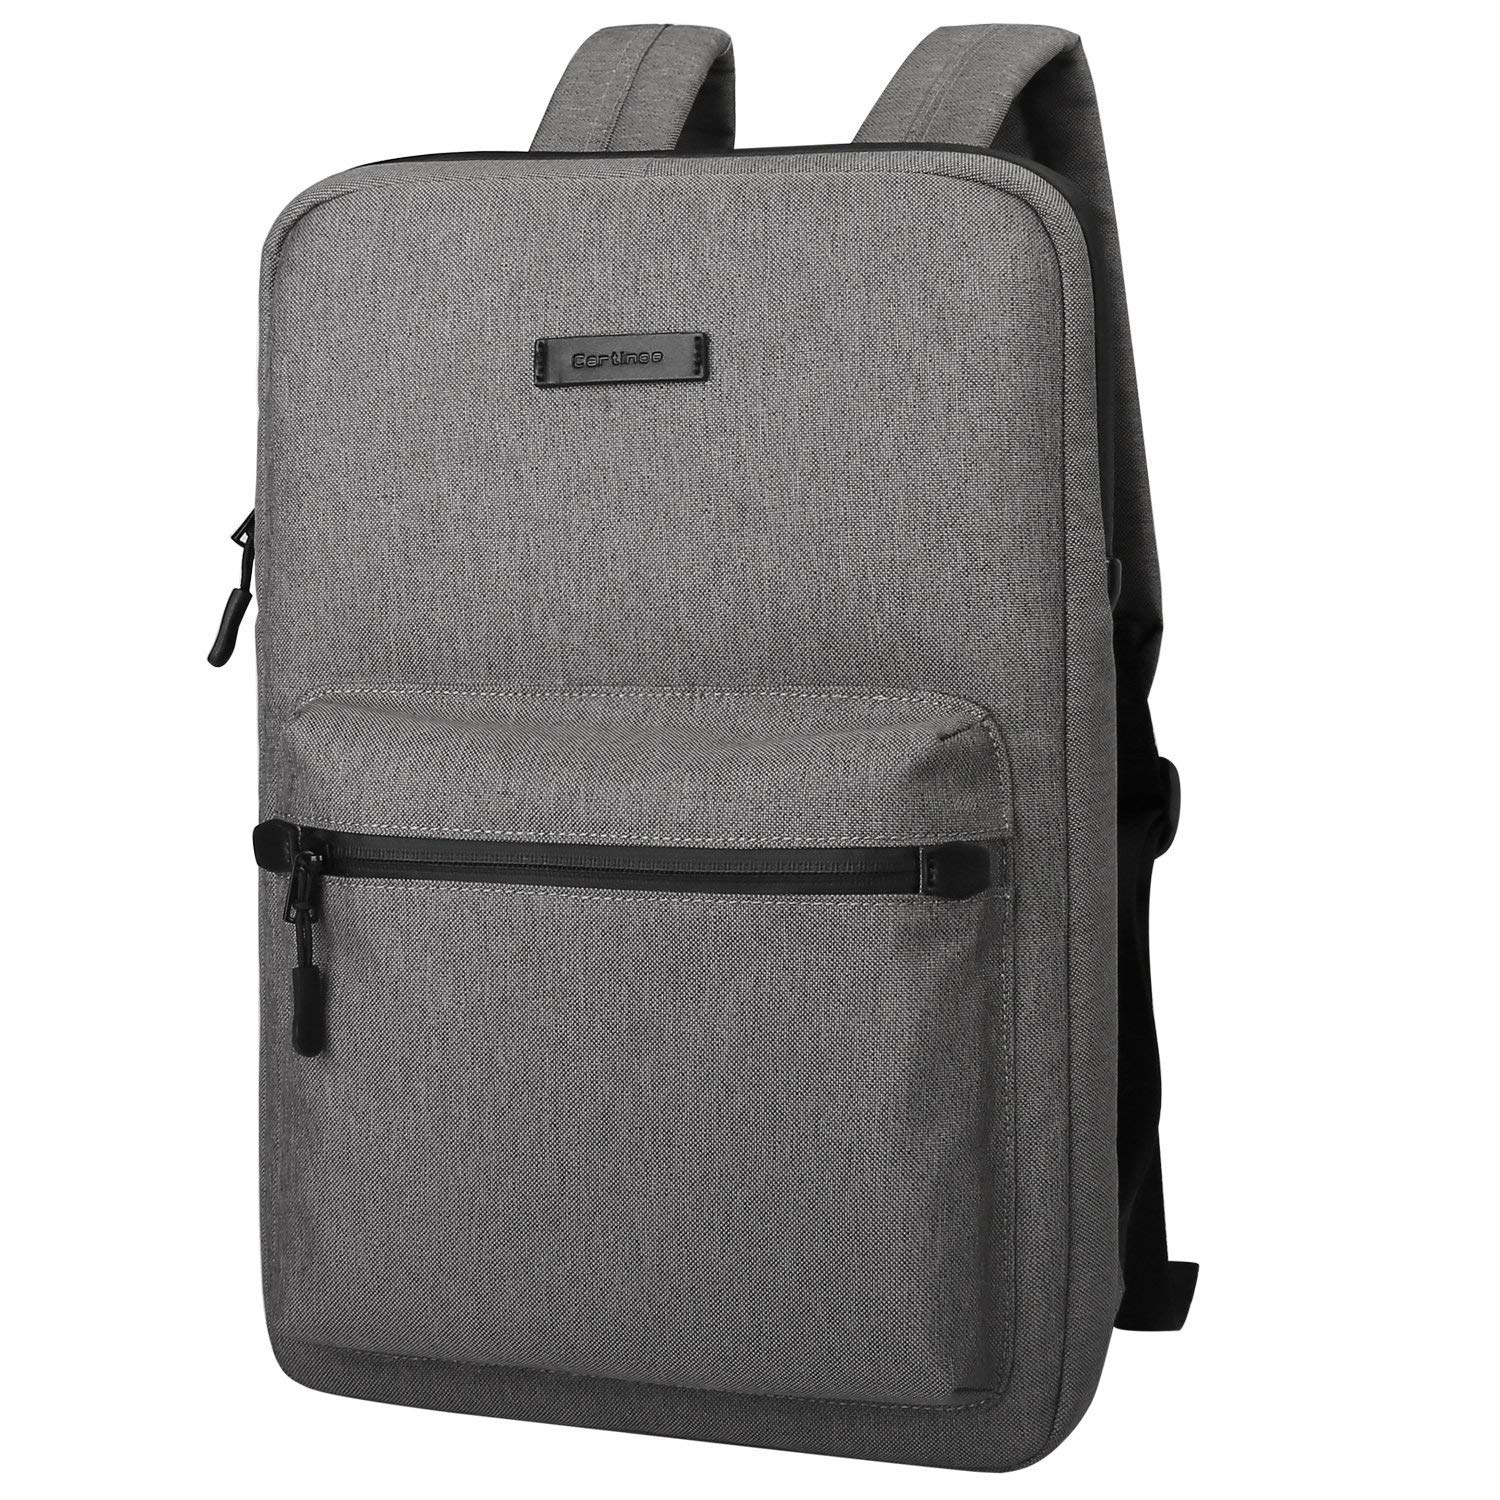 Cartinoe Ultra-Thin Laptop Backpacks,Canvas Lightweight Backpack,Water Resistant College School Computer Bag for Boys and Girls for Travel,Business,Student Daypack,15 15.6 inch Laptop & Notebook,Gray